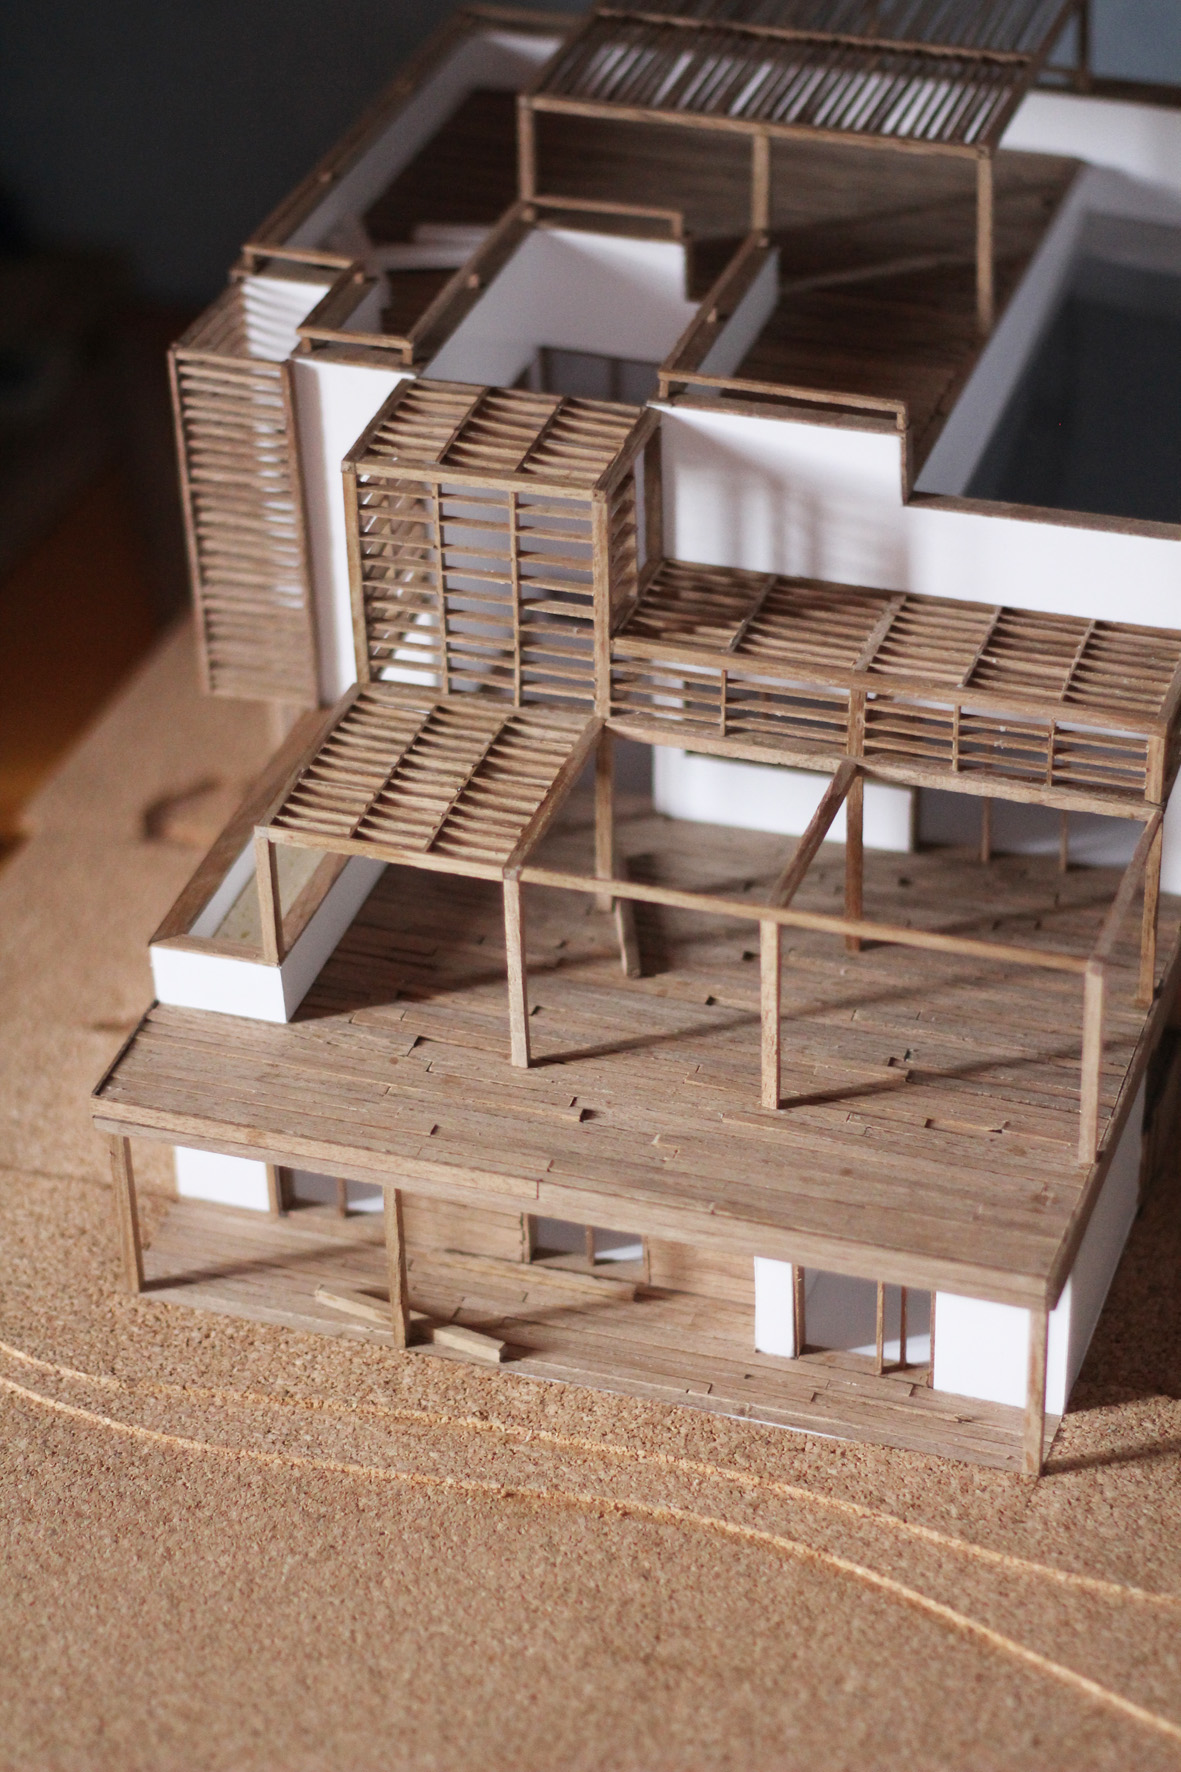 architecture wooden models architectural handmade maquette behance comptoirs les crock making wood building modeling concept thibaut malet scale board working